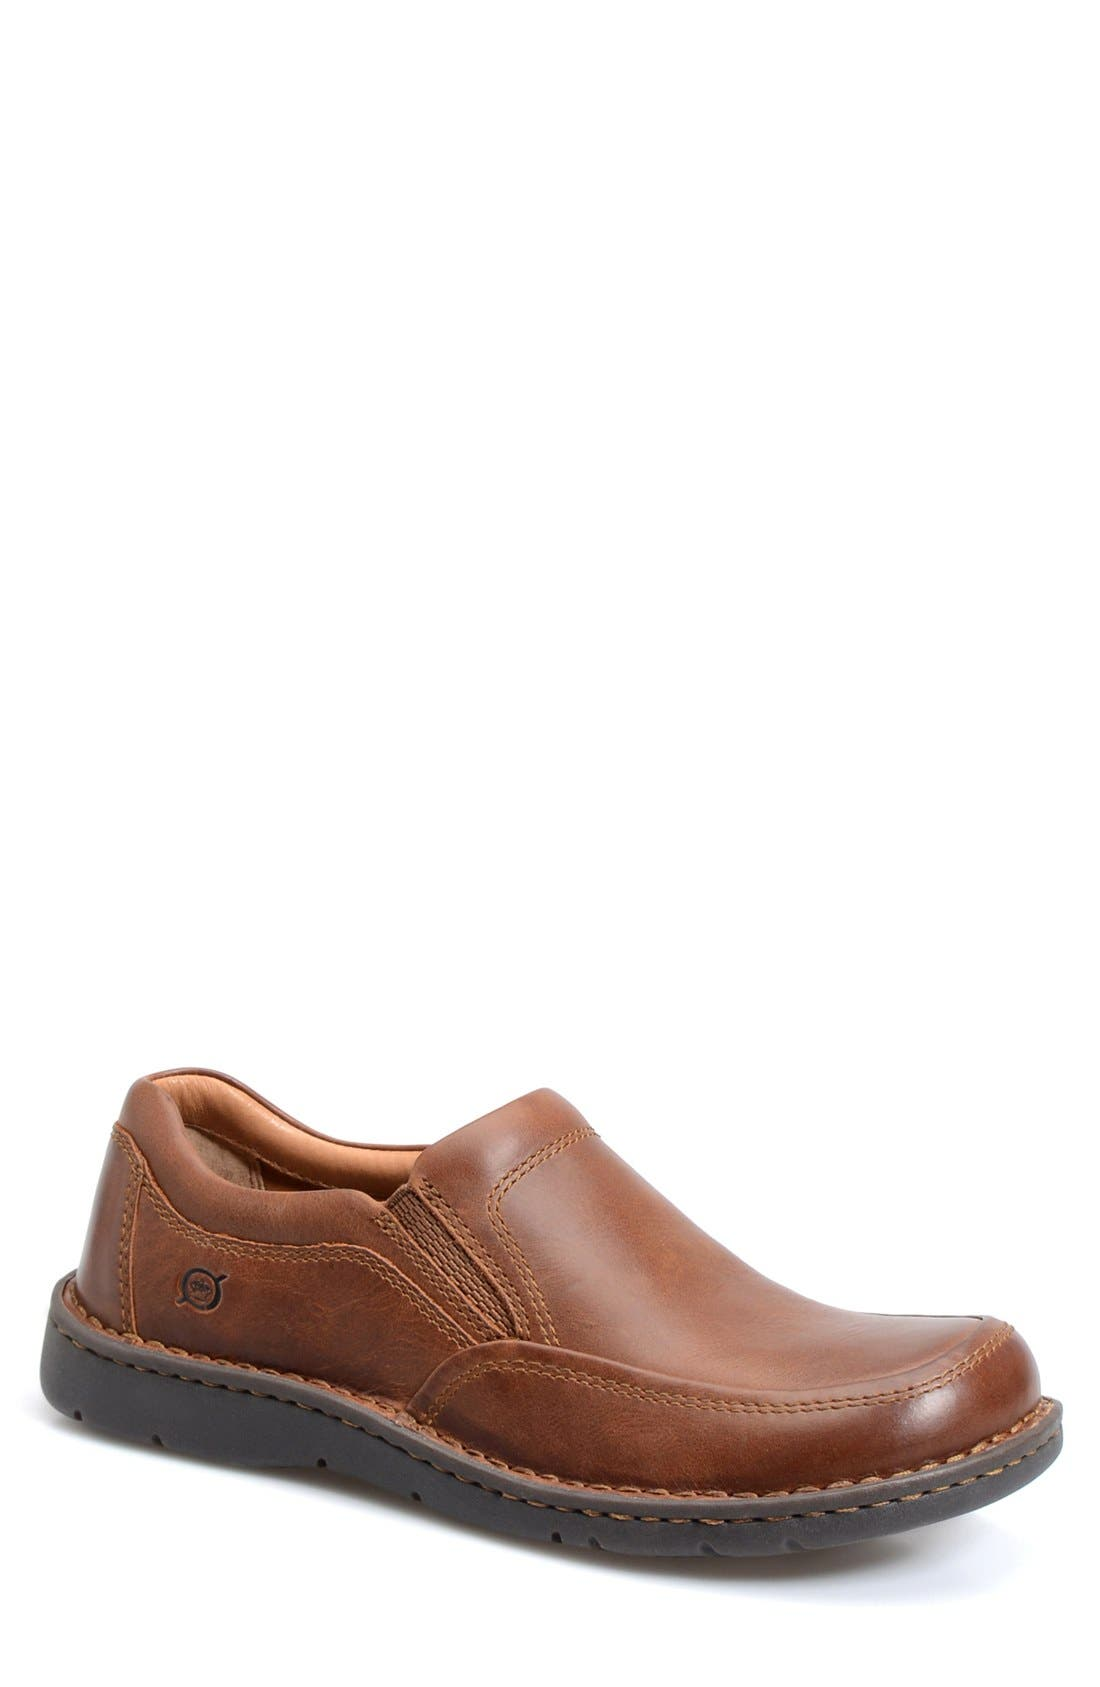 'Luis' Slip-On,                         Main,                         color, Tan